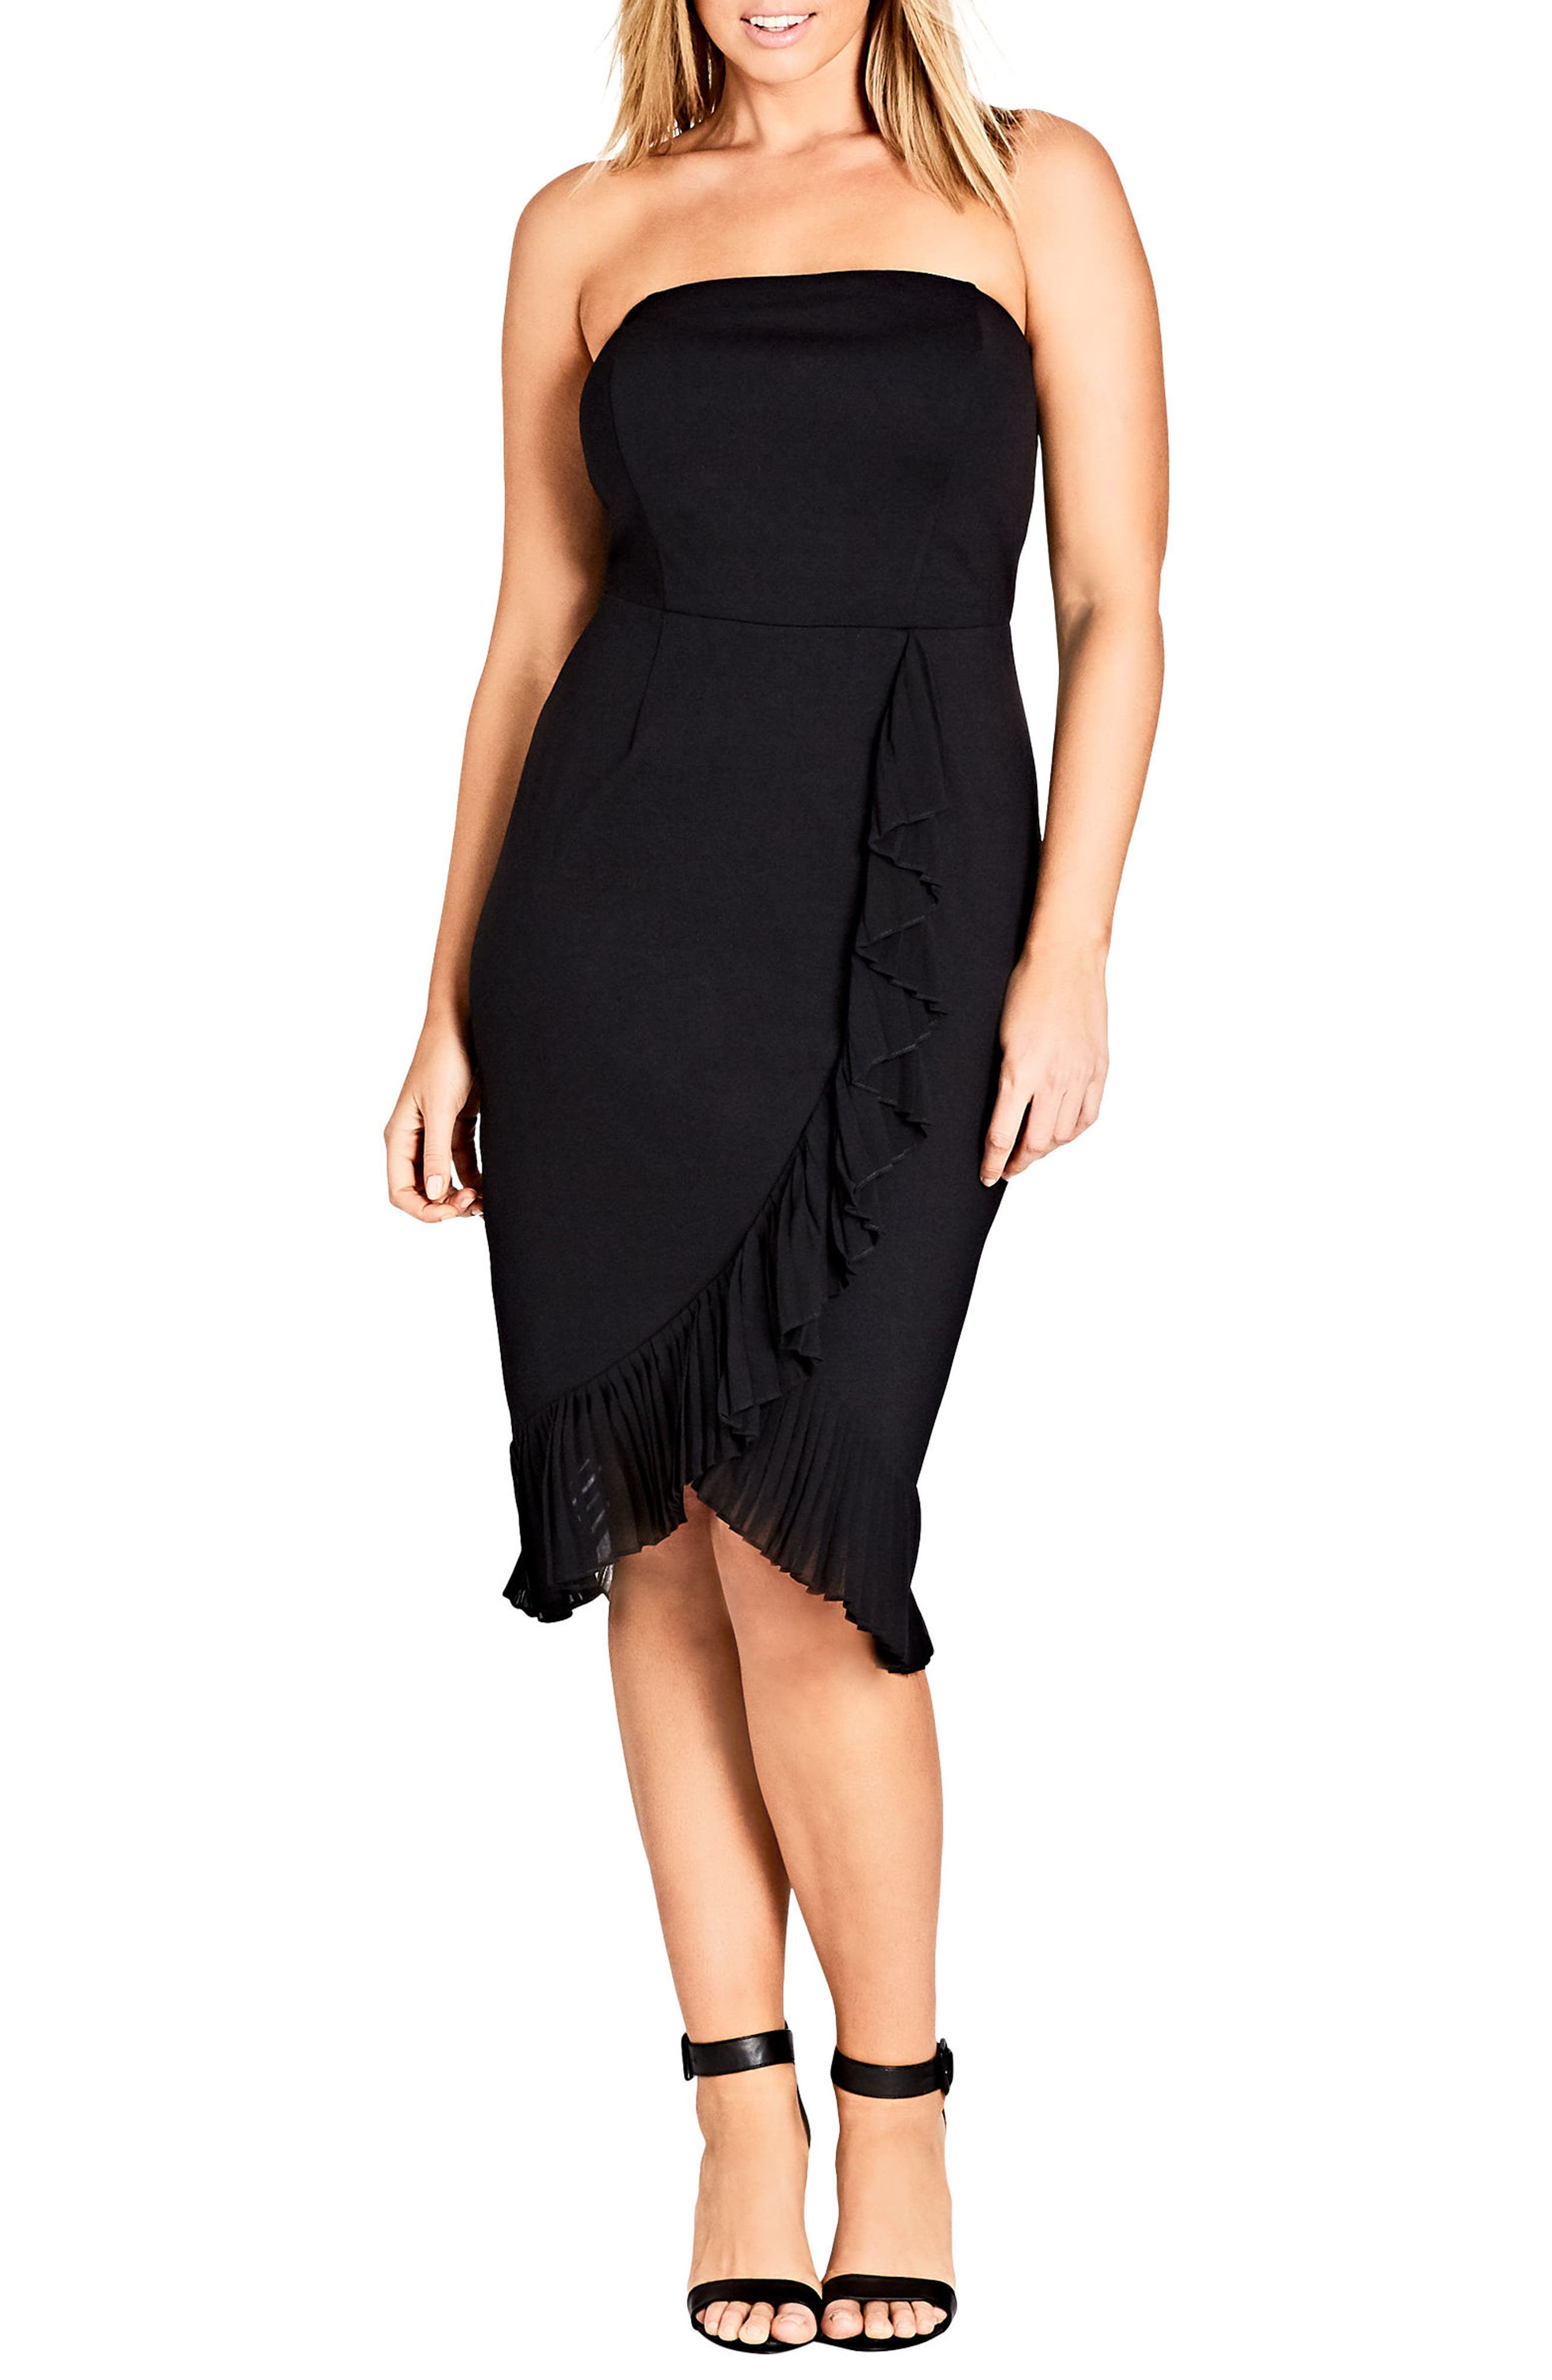 Chic Love Strapless Ruffle Trim Dress,                             Main thumbnail 1, color,                             001